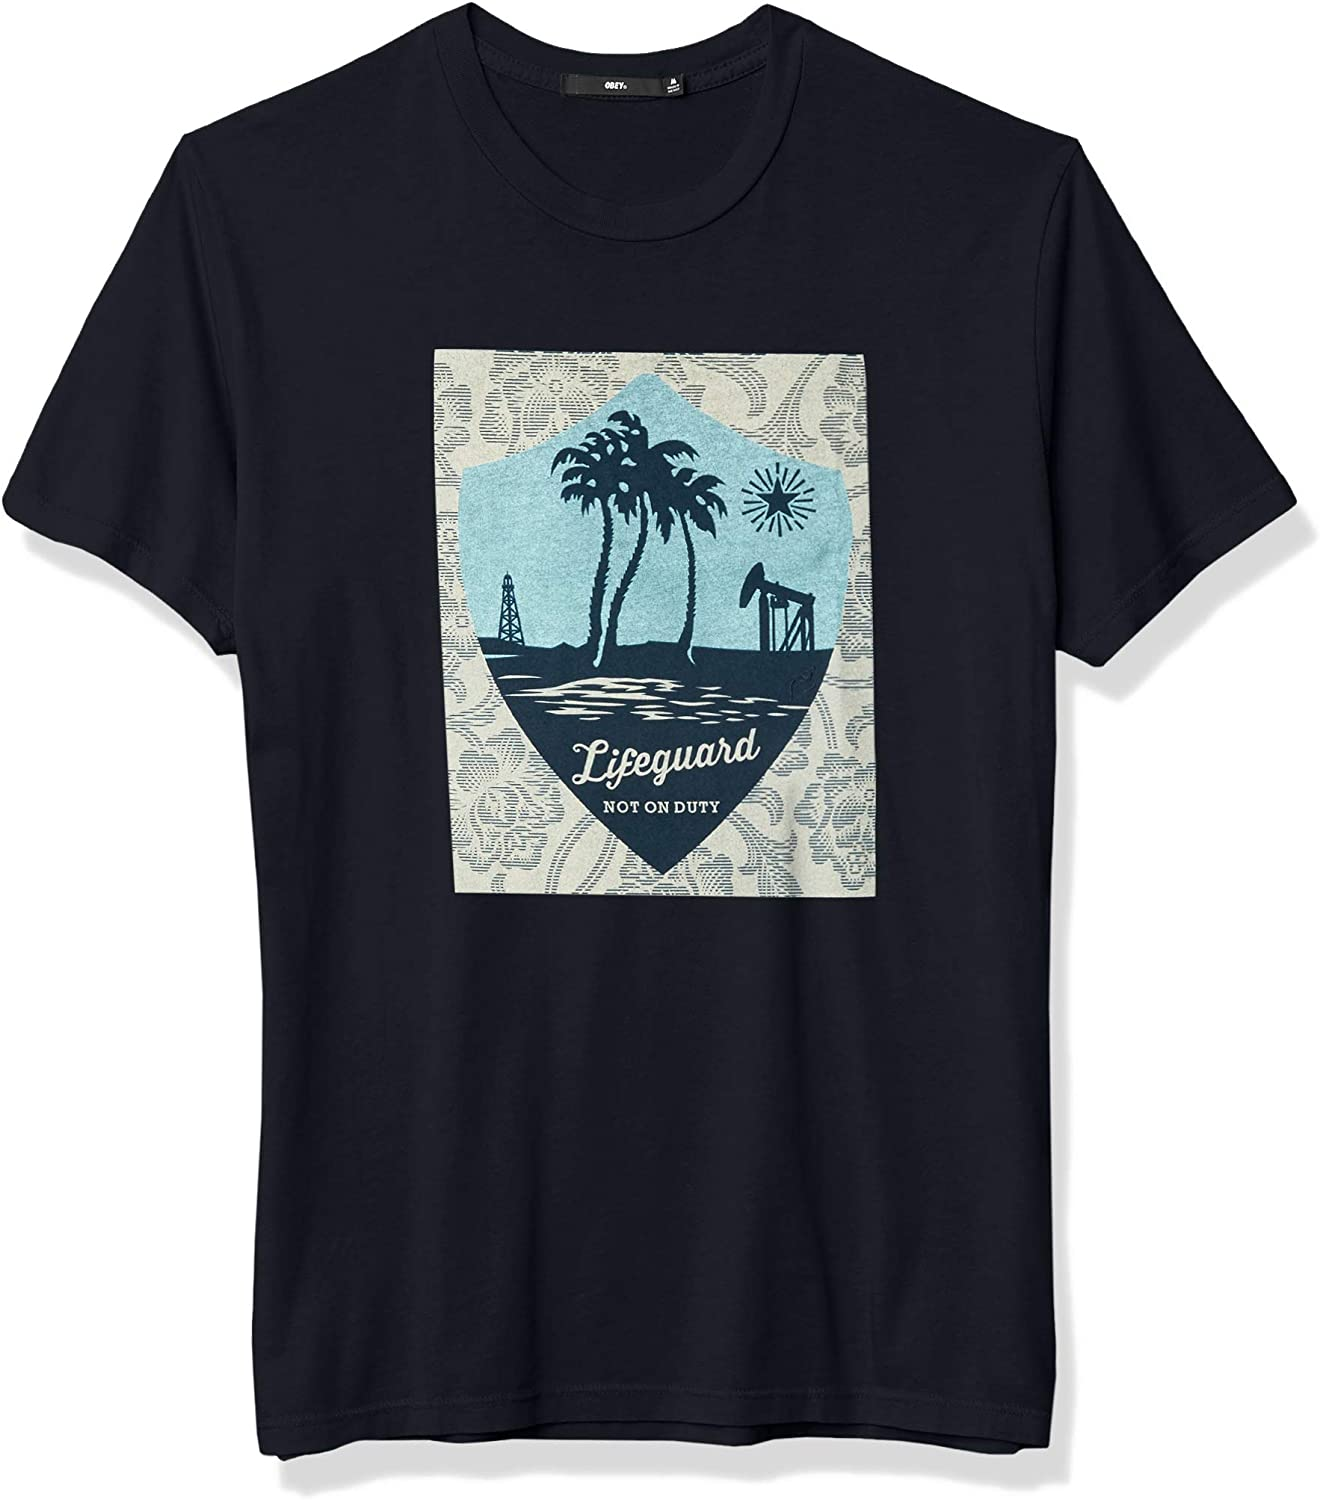 Obey Mens Superior Ss Lifeguard Not on Duty Tee